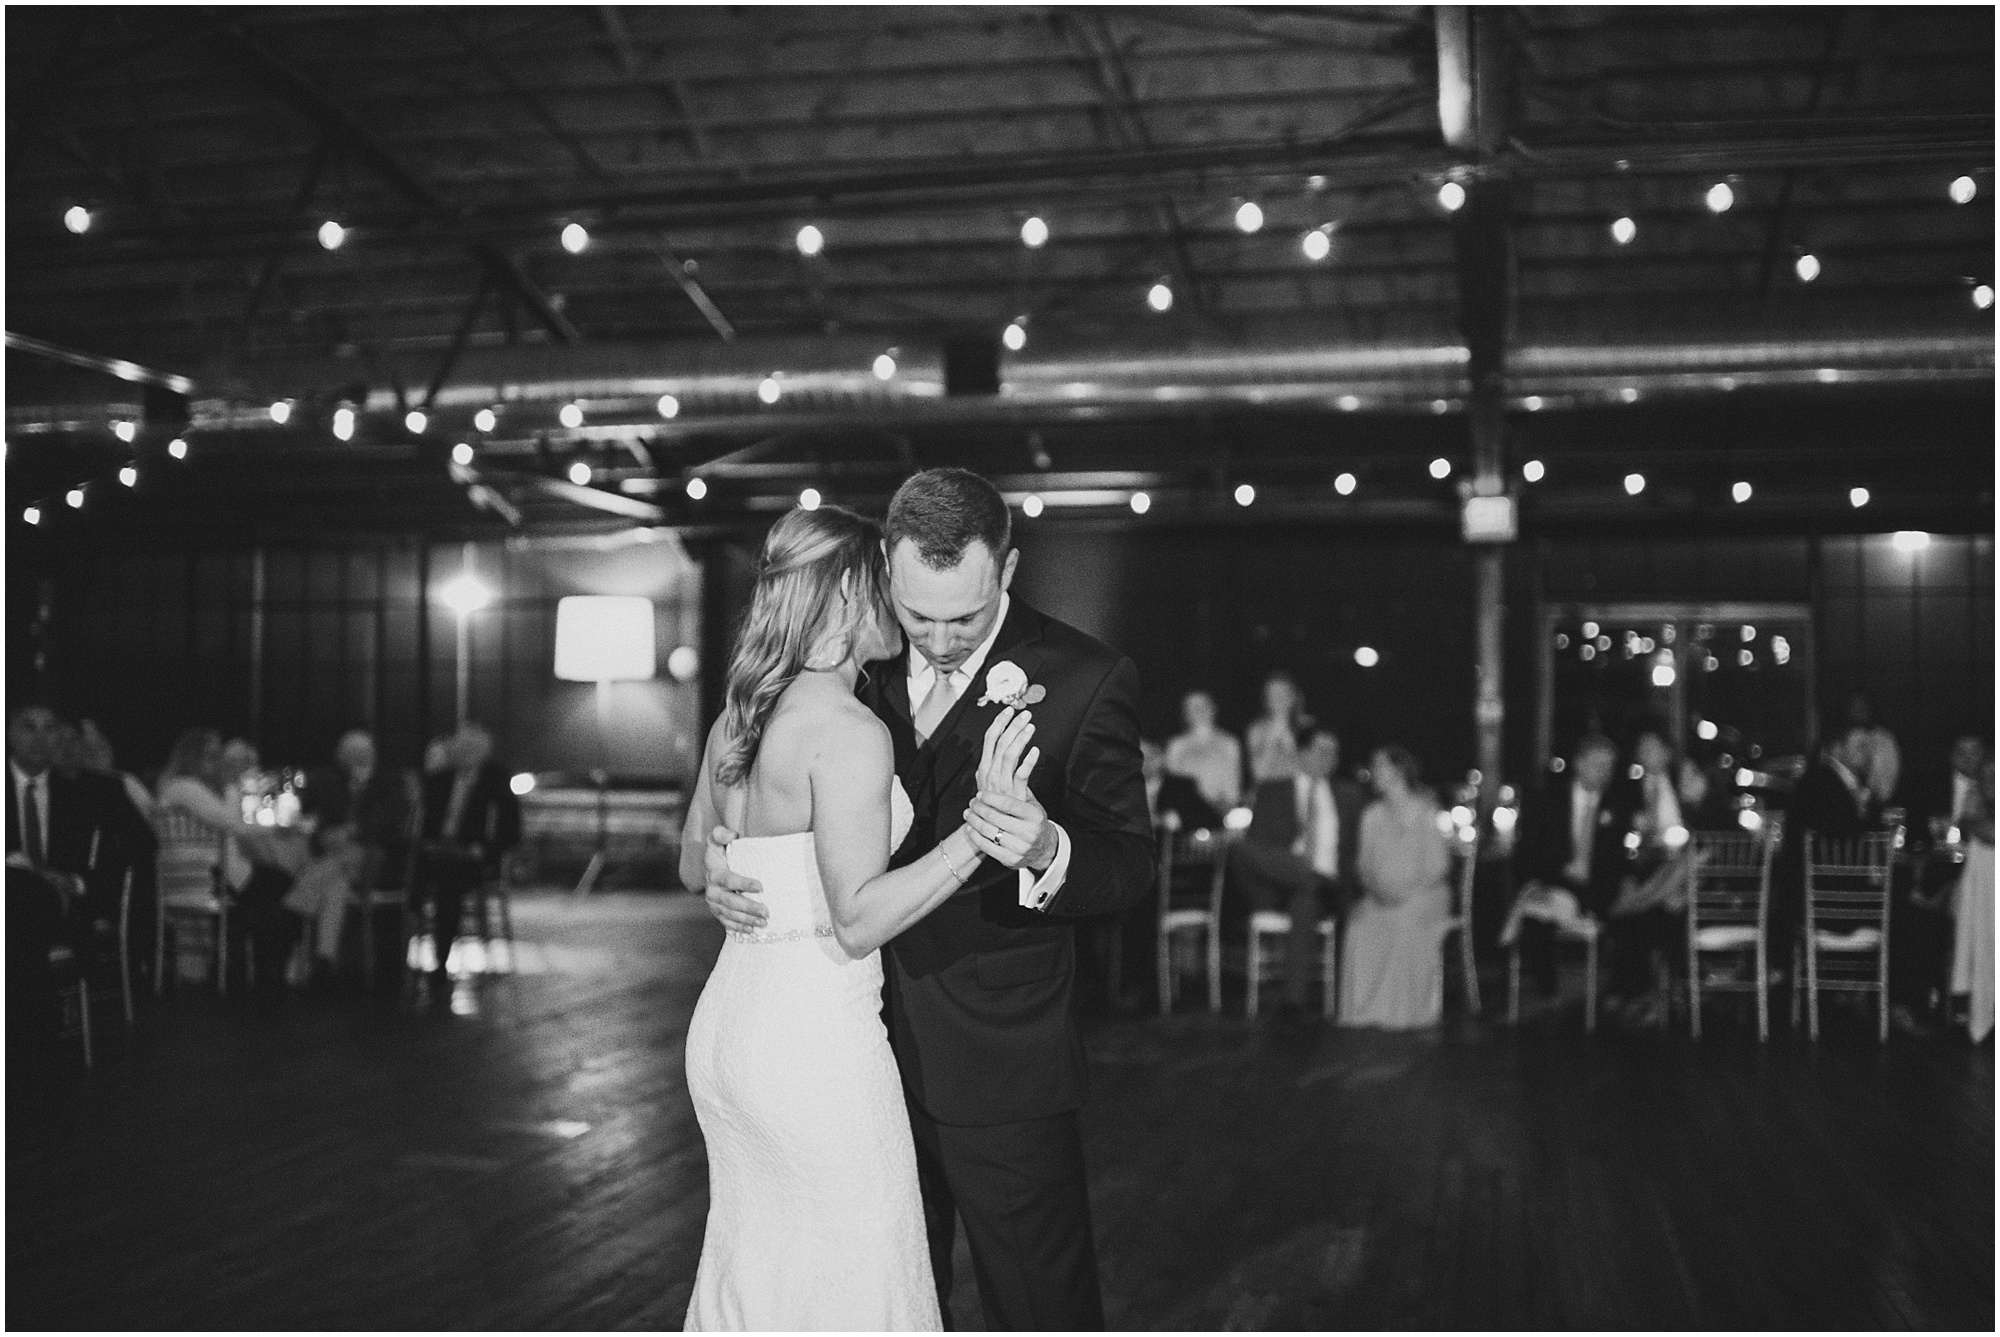 B&W dancing photo